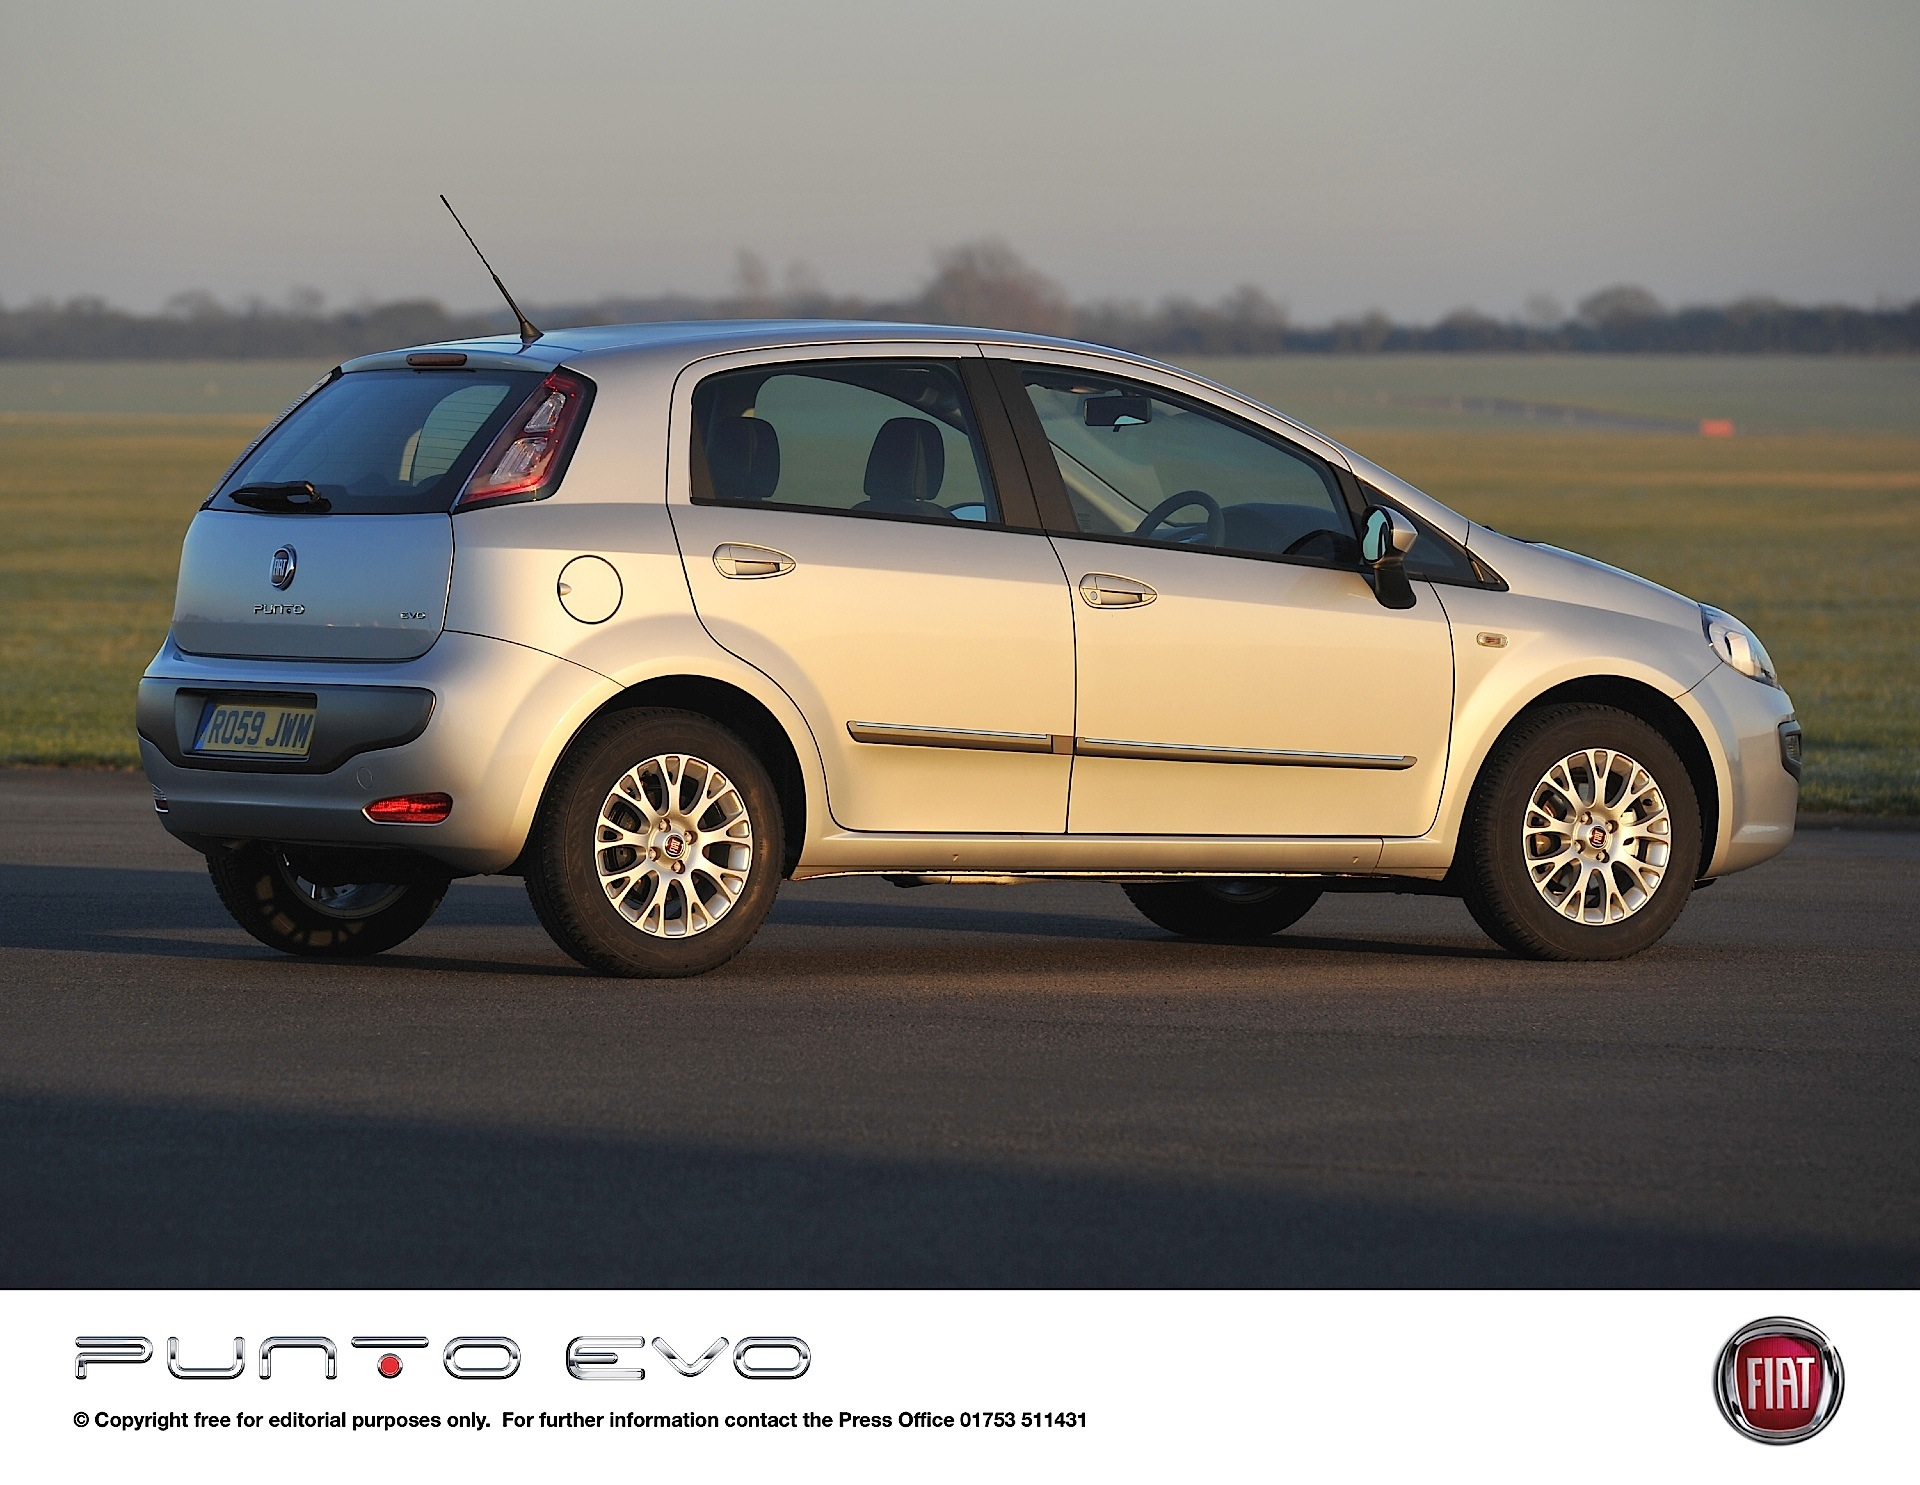 fiat punto evo 5 doors specs 2009 2010 2011 2012 autoevolution. Black Bedroom Furniture Sets. Home Design Ideas